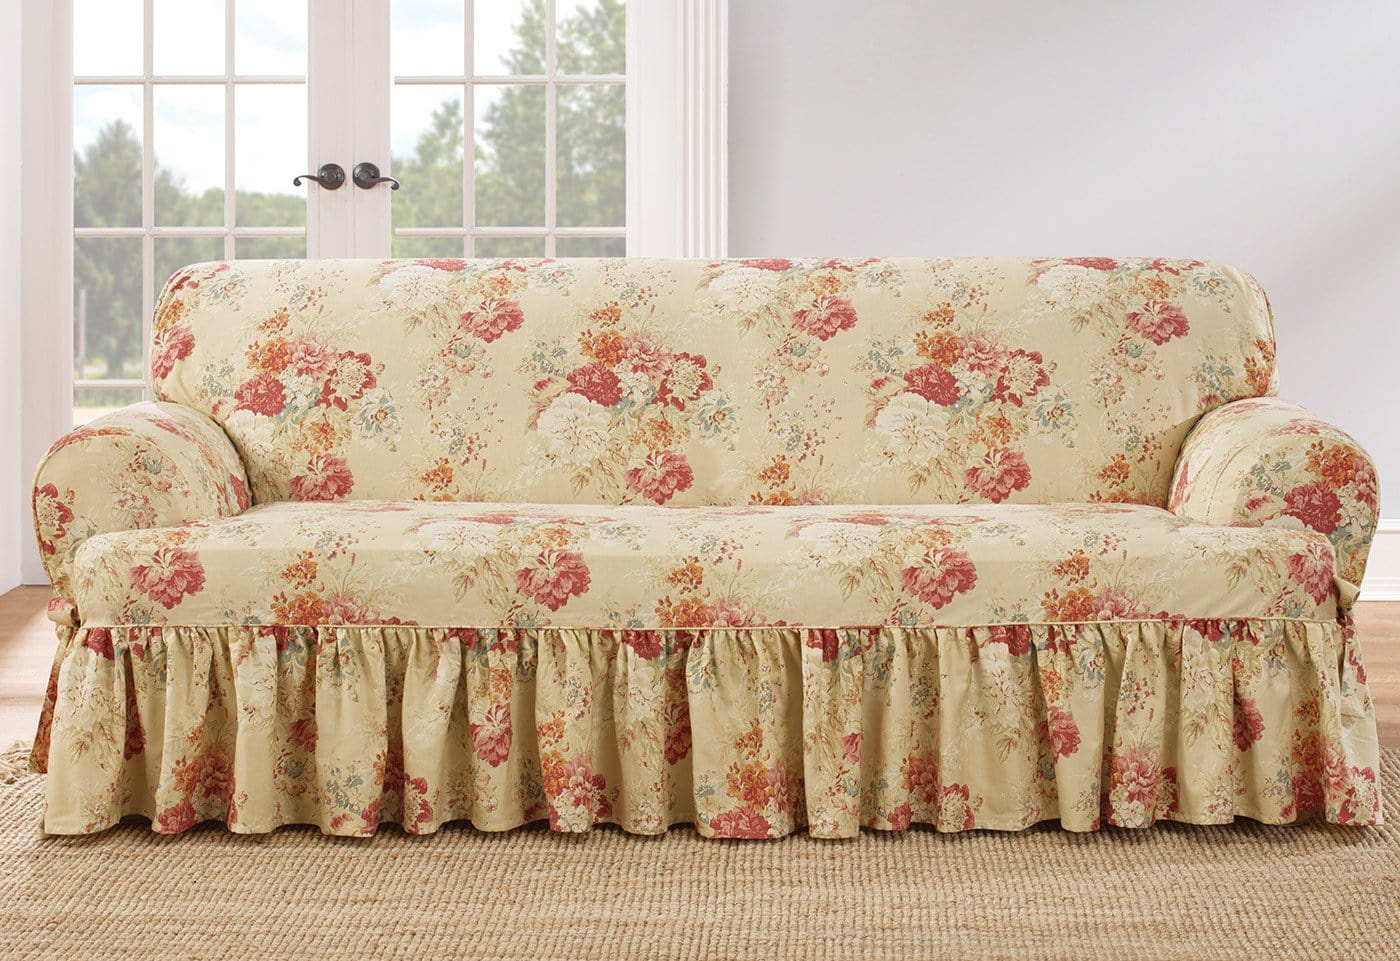 Ballad Bouquet By Waverly One Piece Sofa Slipcover Ruffled Skirt 100% Cotton Machine Washable - Sofa / T-Cushion / Blush